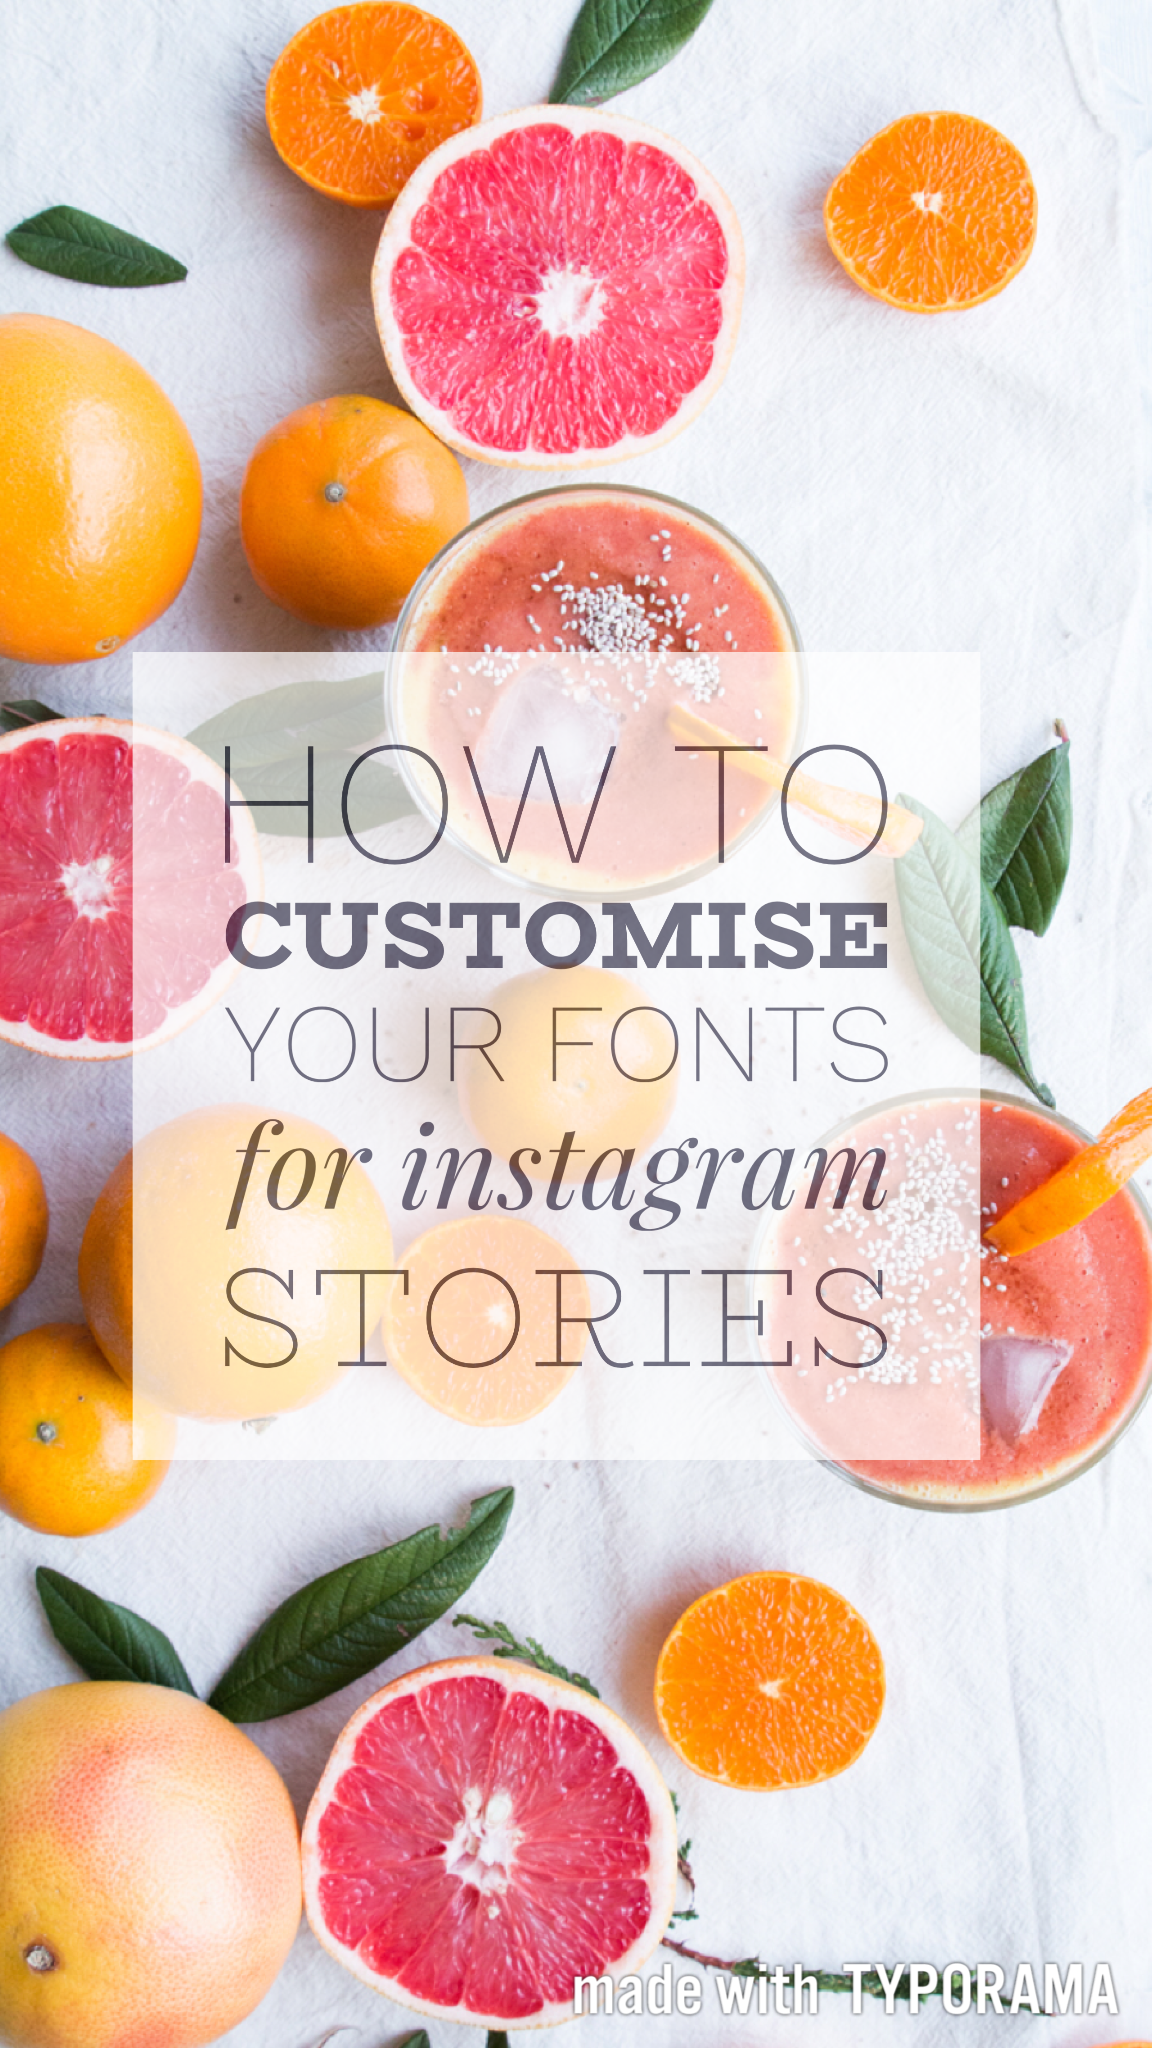 HOW YOU CAN CUSTOMISE YOUR FONTS ON INSTAGRAM STORIES — a vegan food